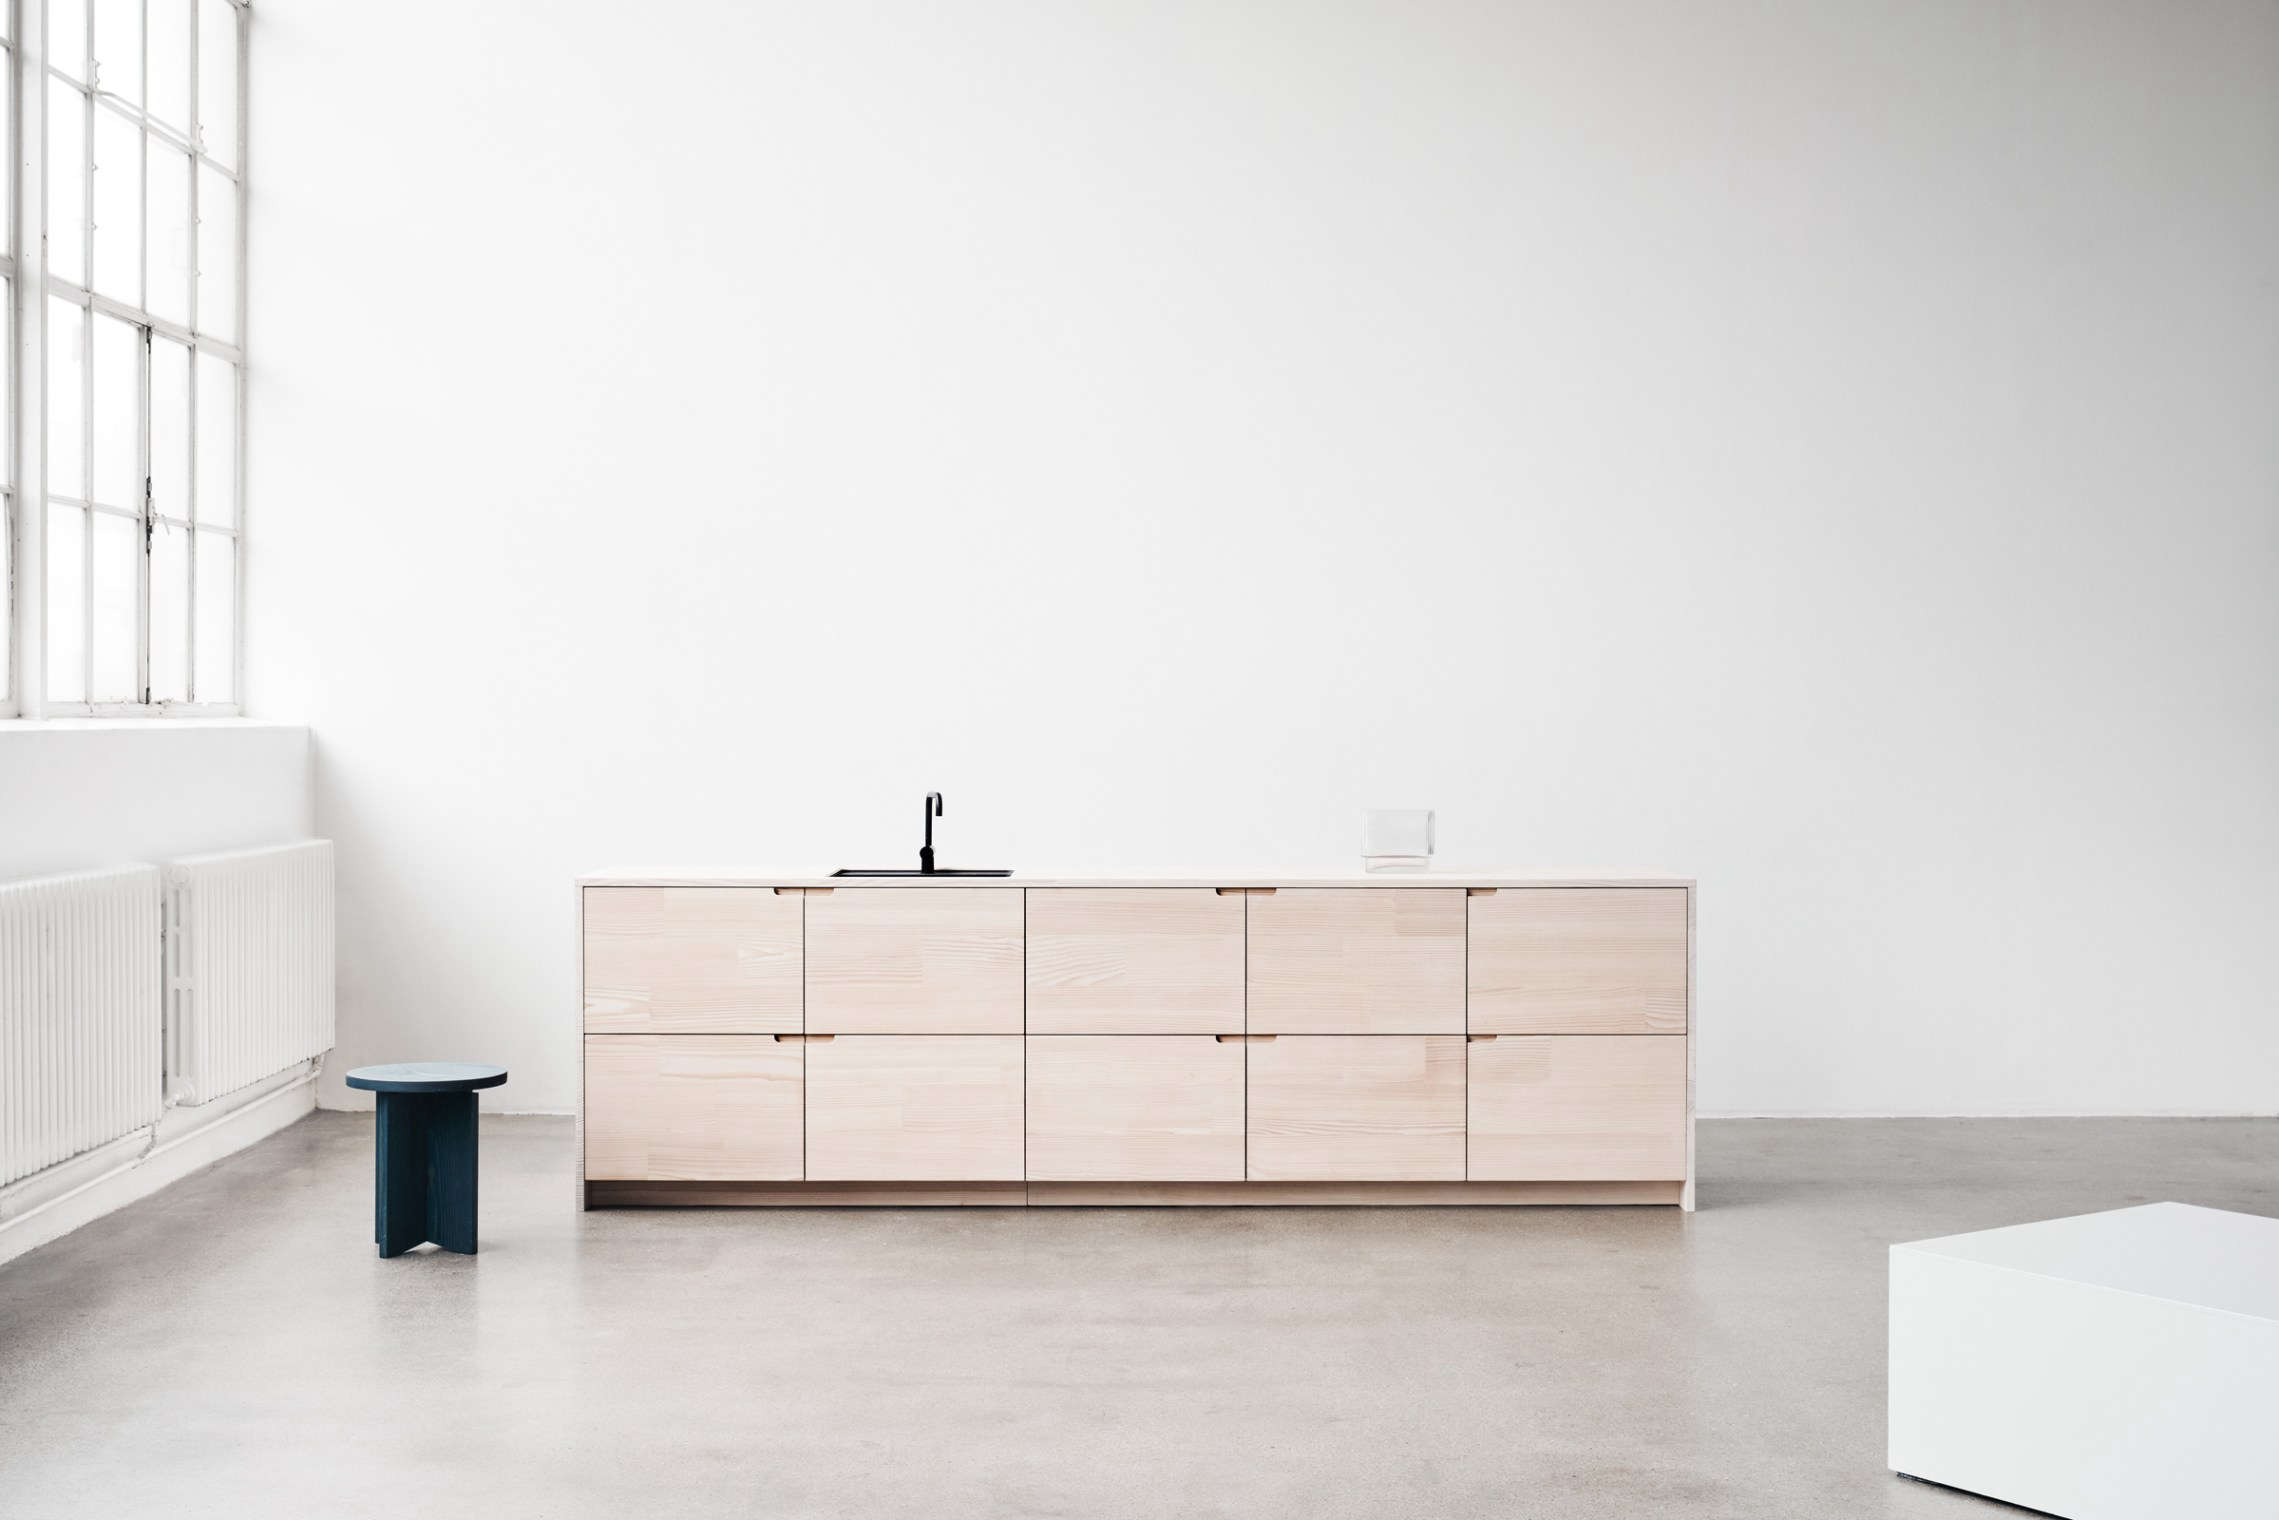 Ikea Kitchen Upgrade 11 Custom Cabinet Companies For The Ultimate Kitchen Hack Remodelista